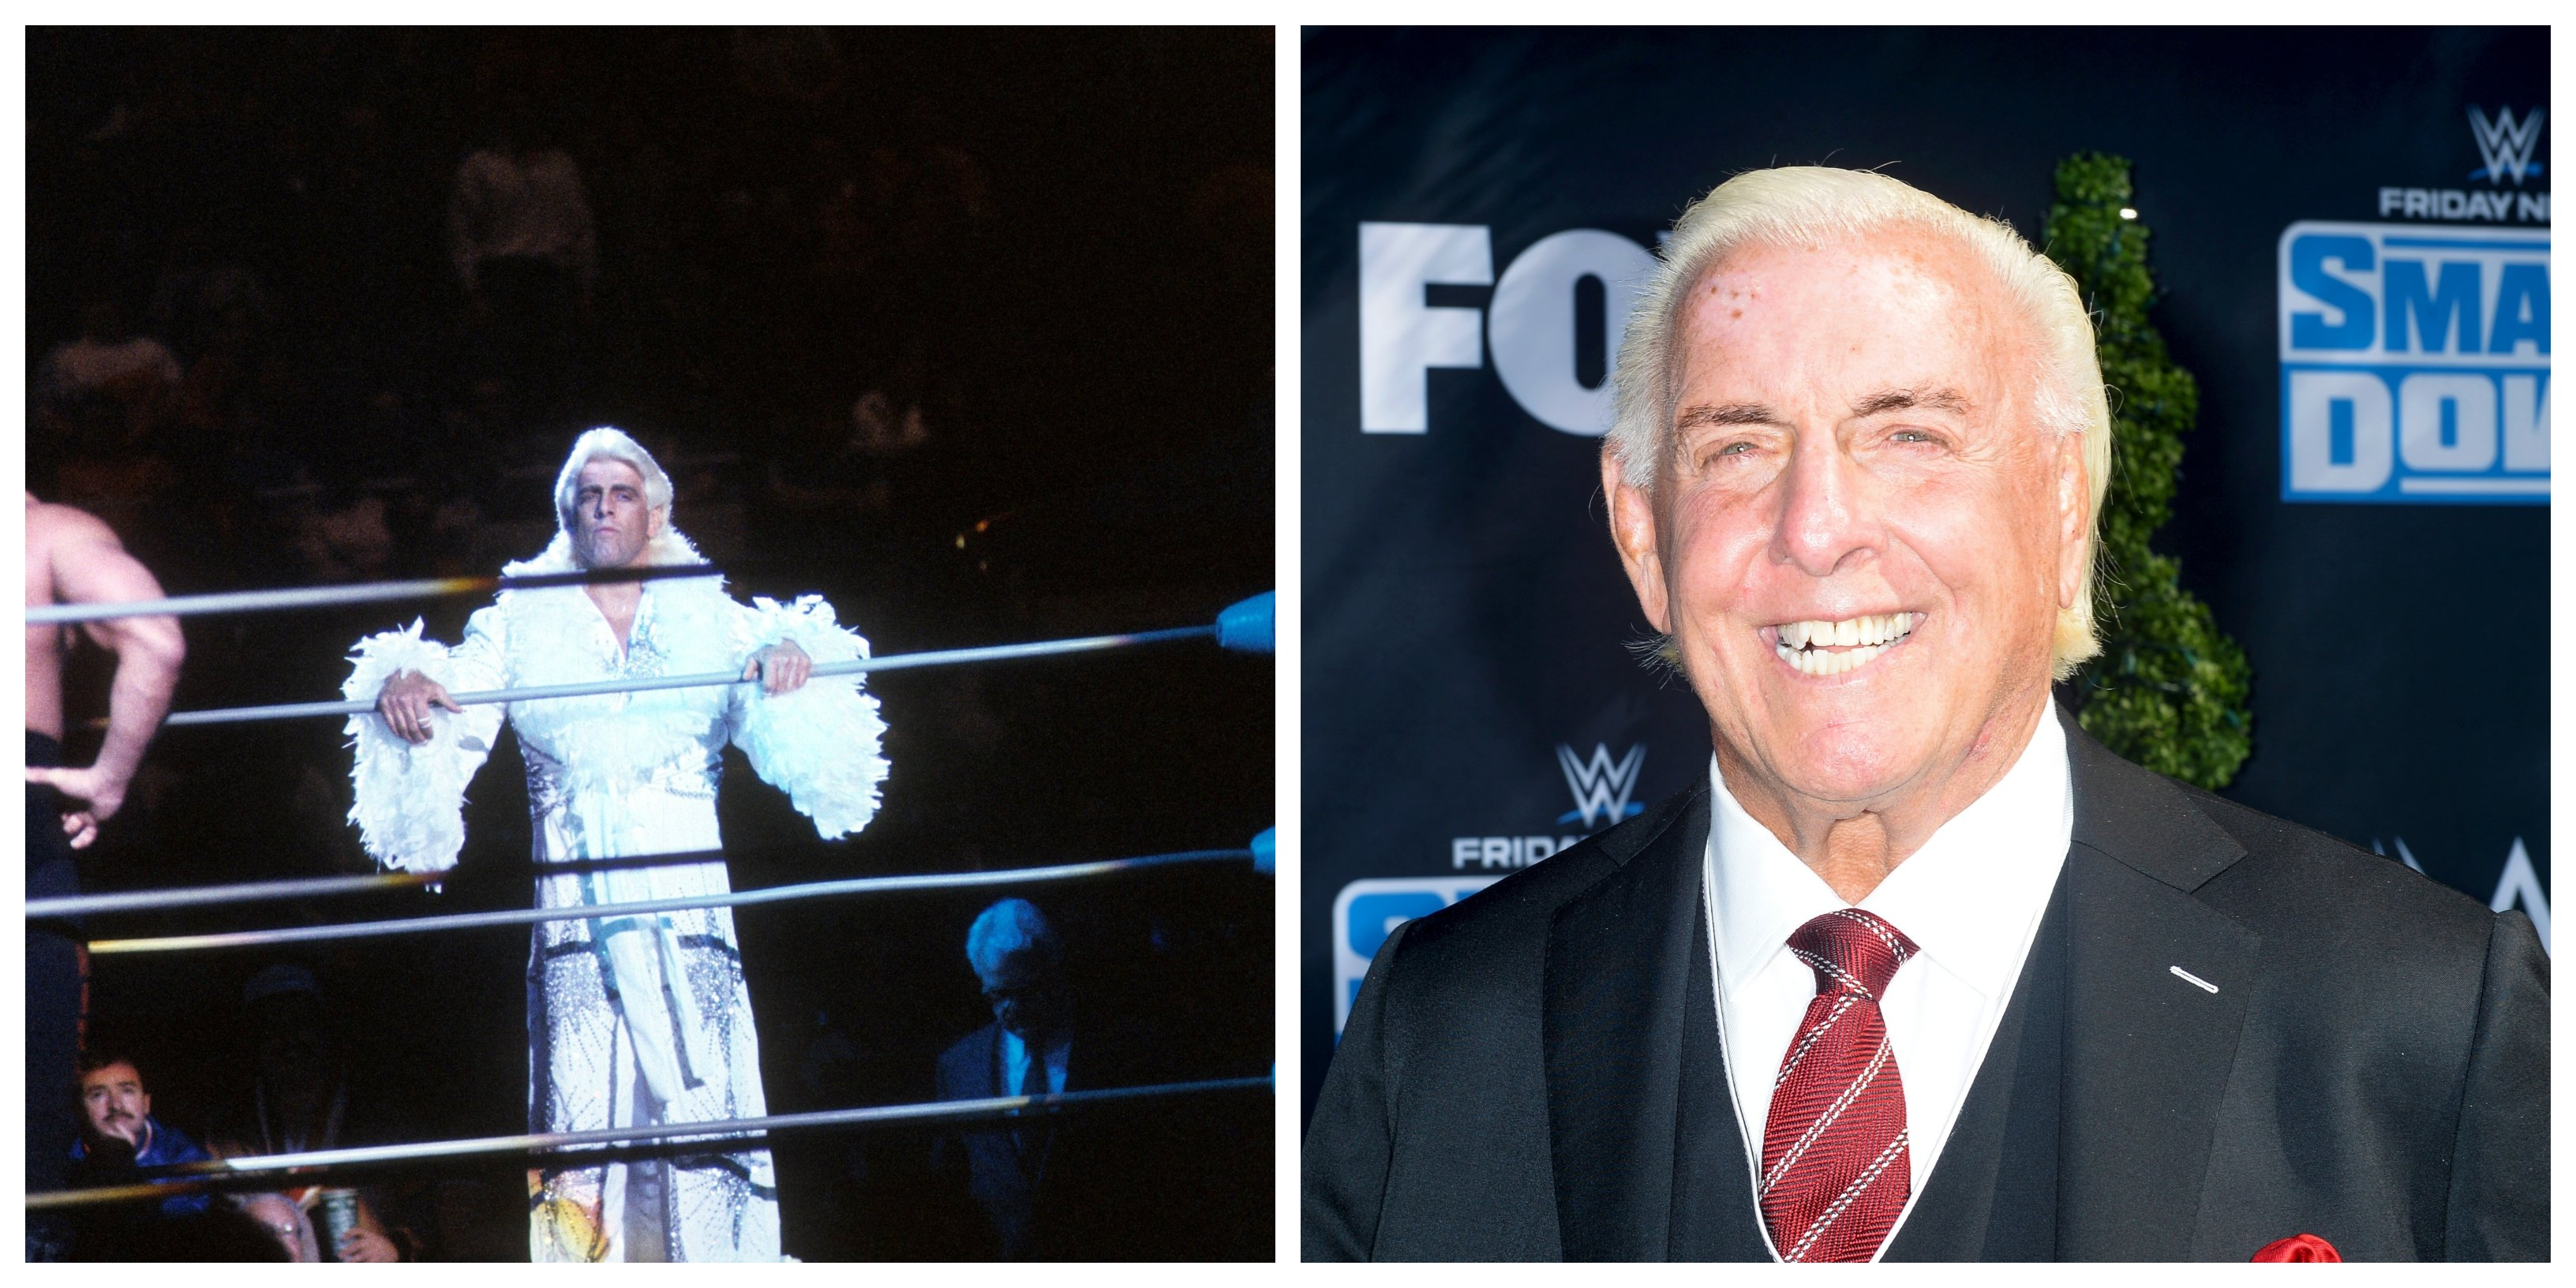 Image credits: Getty Images/B Bennett - Getty Images/Fox Sports/WWE/Jerod Harris